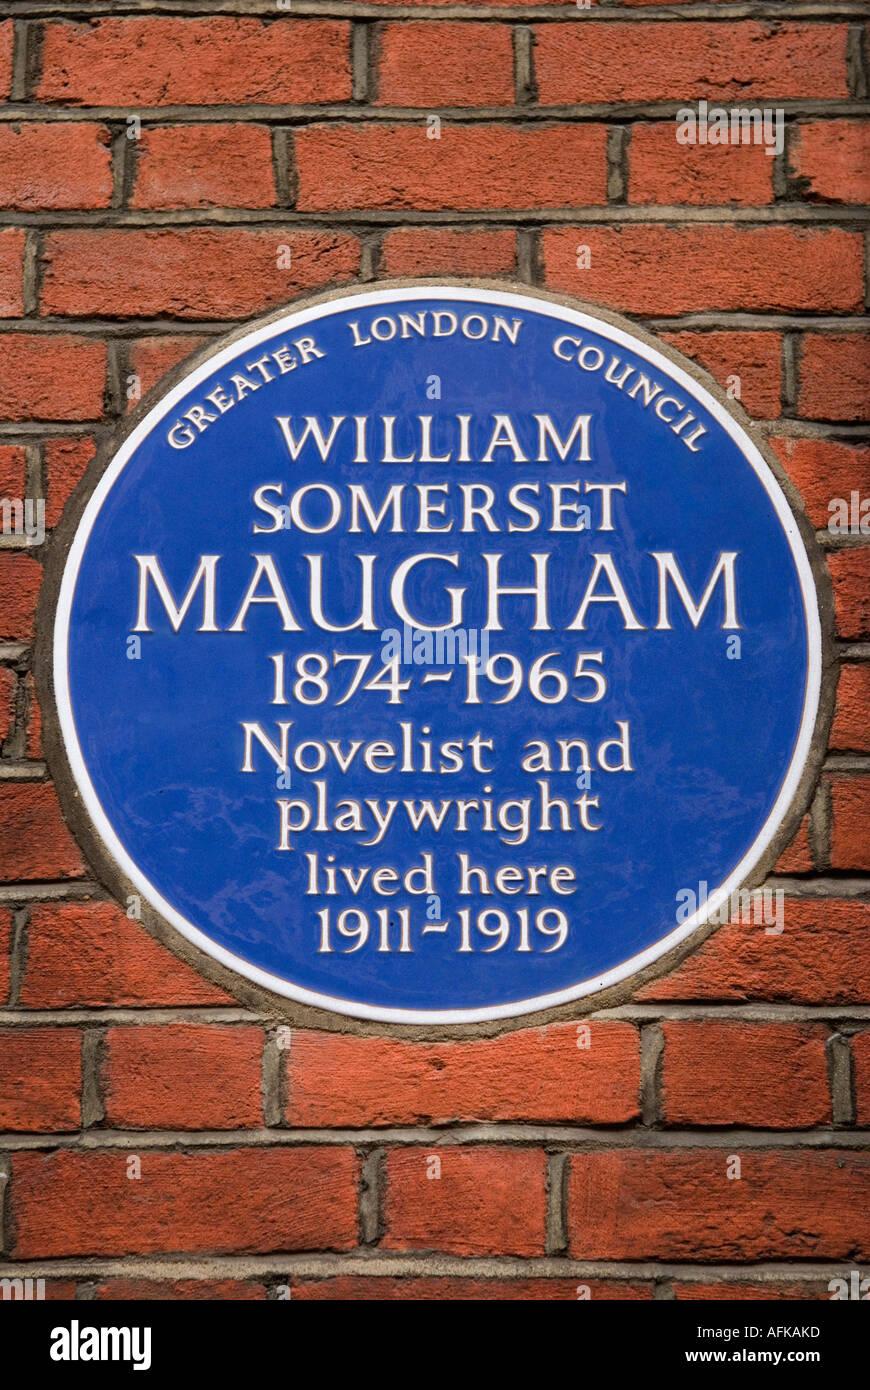 Greater London Council Blue plaque for William Somerset Maugham. 6 Chesterfield Street Mayfair London W1 England - Stock Image